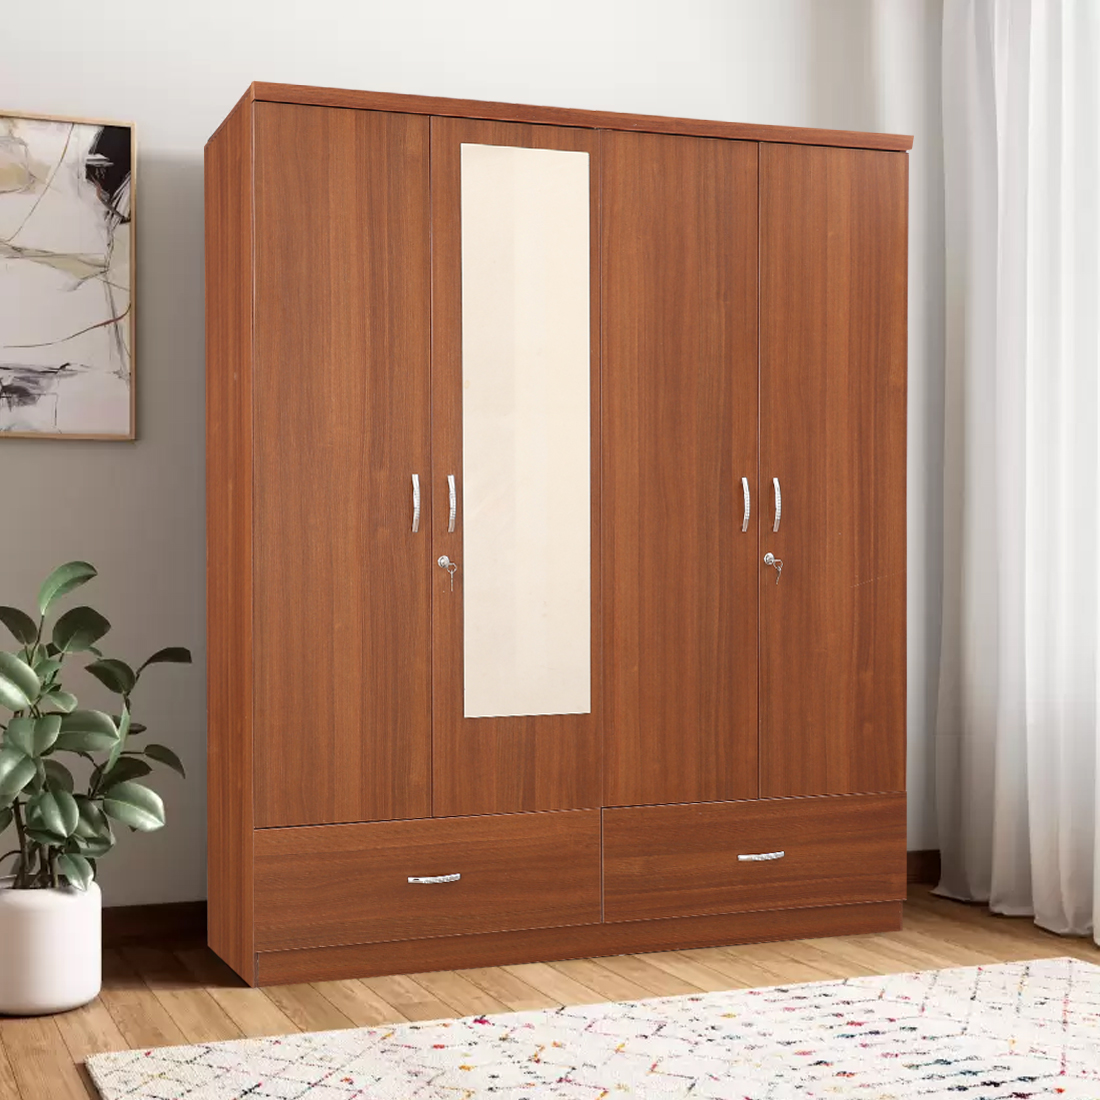 Ultima Engineered Wood Four Door wardrobe in Regato Walnut Colour by HomeTown